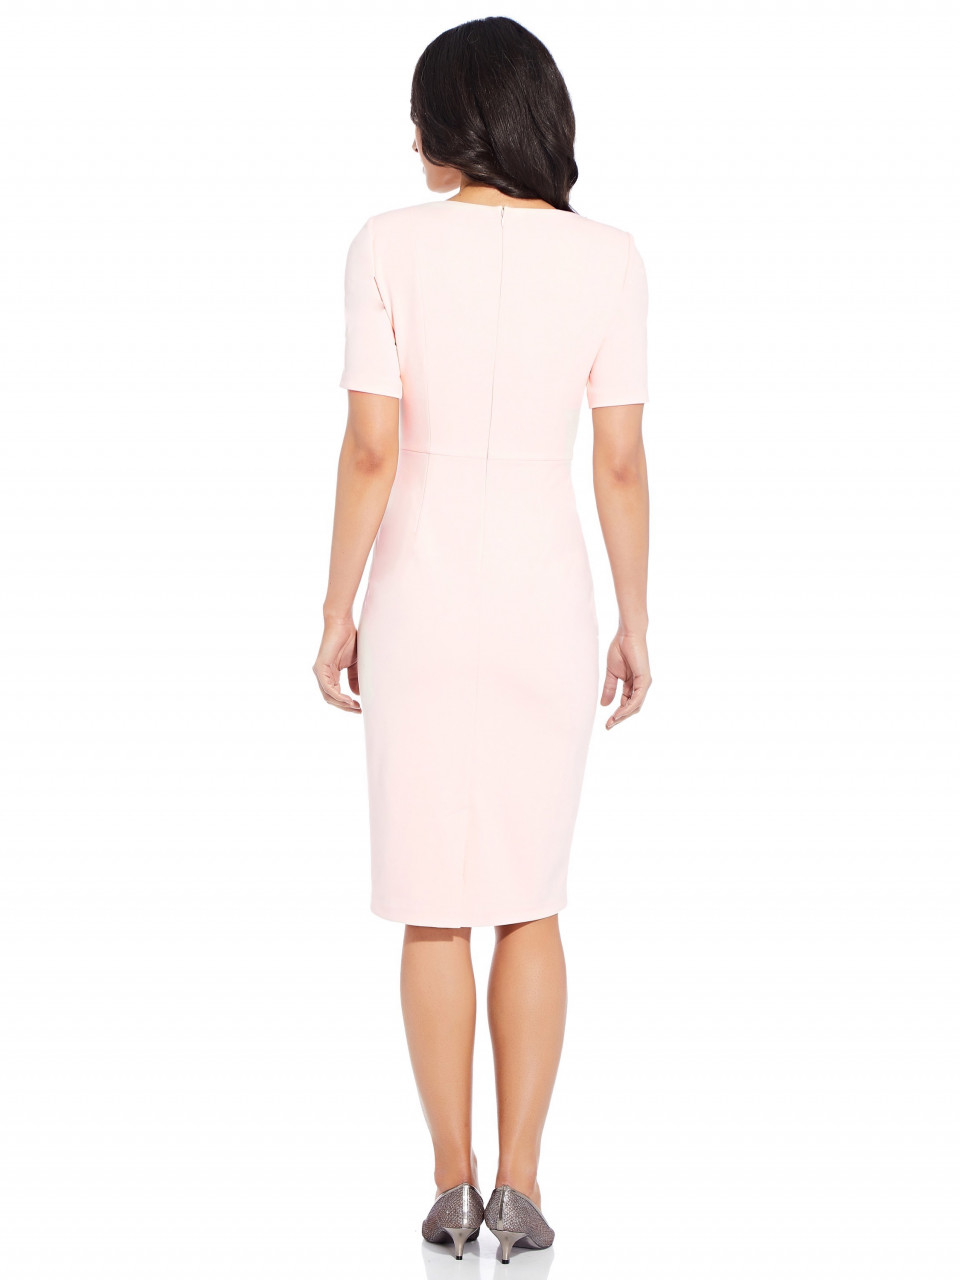 Knit crepe tie sheath dress